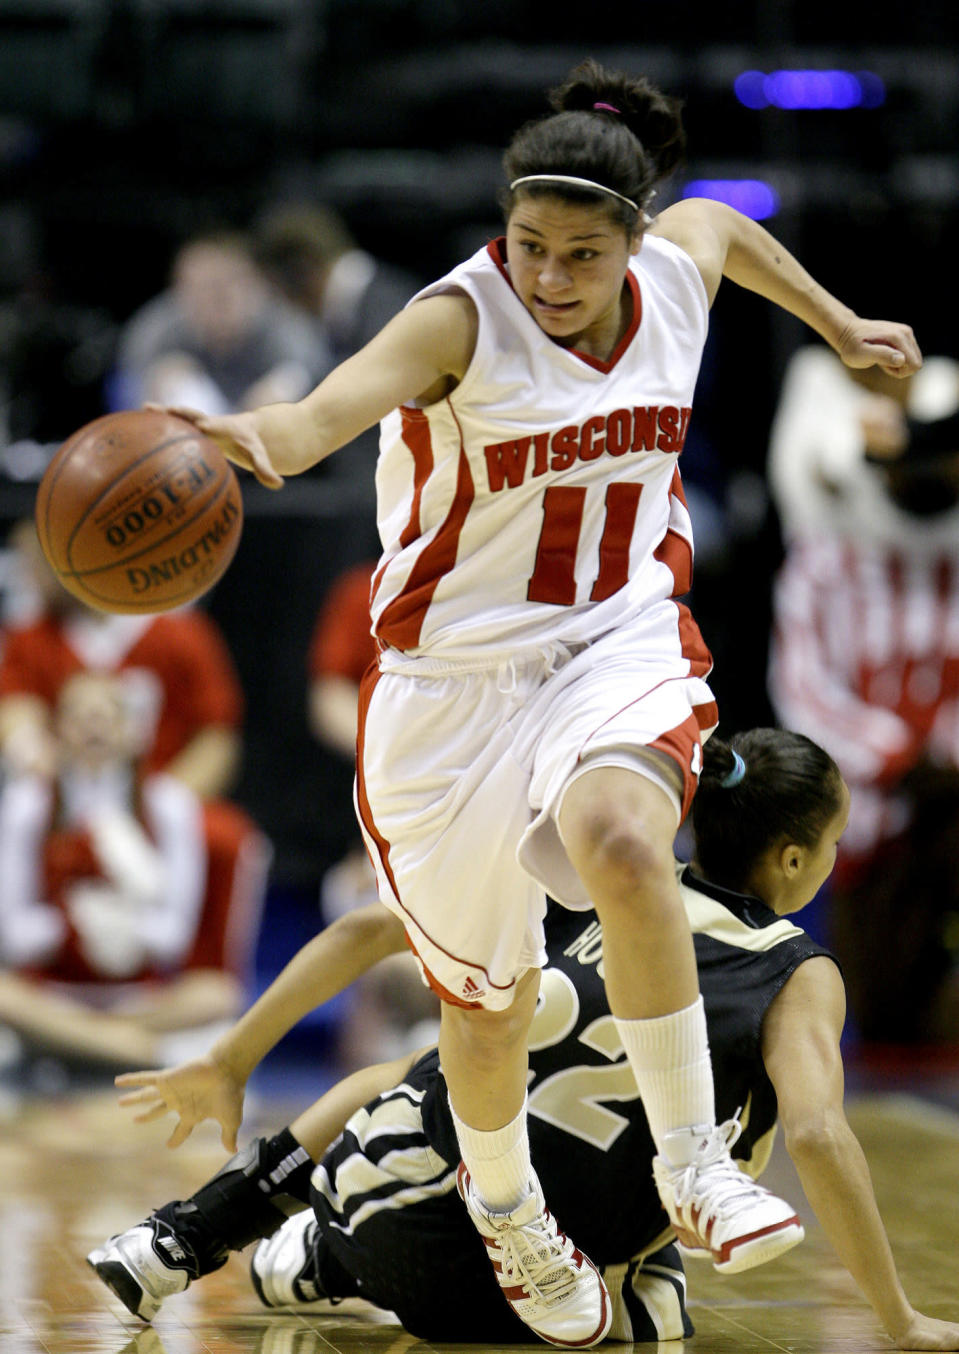 """FILE - In this Friday, March 5, 2010 file photo, Wisconsin guard Rae Lin D'Alie, front, make steals the basketball from Purdue guard KK Houser during the first half of an NCAA college basketball game in the second round of the Women's Big Ten NCAA conference tournament in Indianapolis. Rae Lin D'Alie was born and raised in Wisconsin but is the star of Italy's 3-on-3 basketball team at the Tokyo Olympics. """"Rae Rae"""" as she is known usually is the shortest player on the court at 5-foot-3 but is Italy's spark plug and court general. (AP Photo/Darron Cummings, File)"""